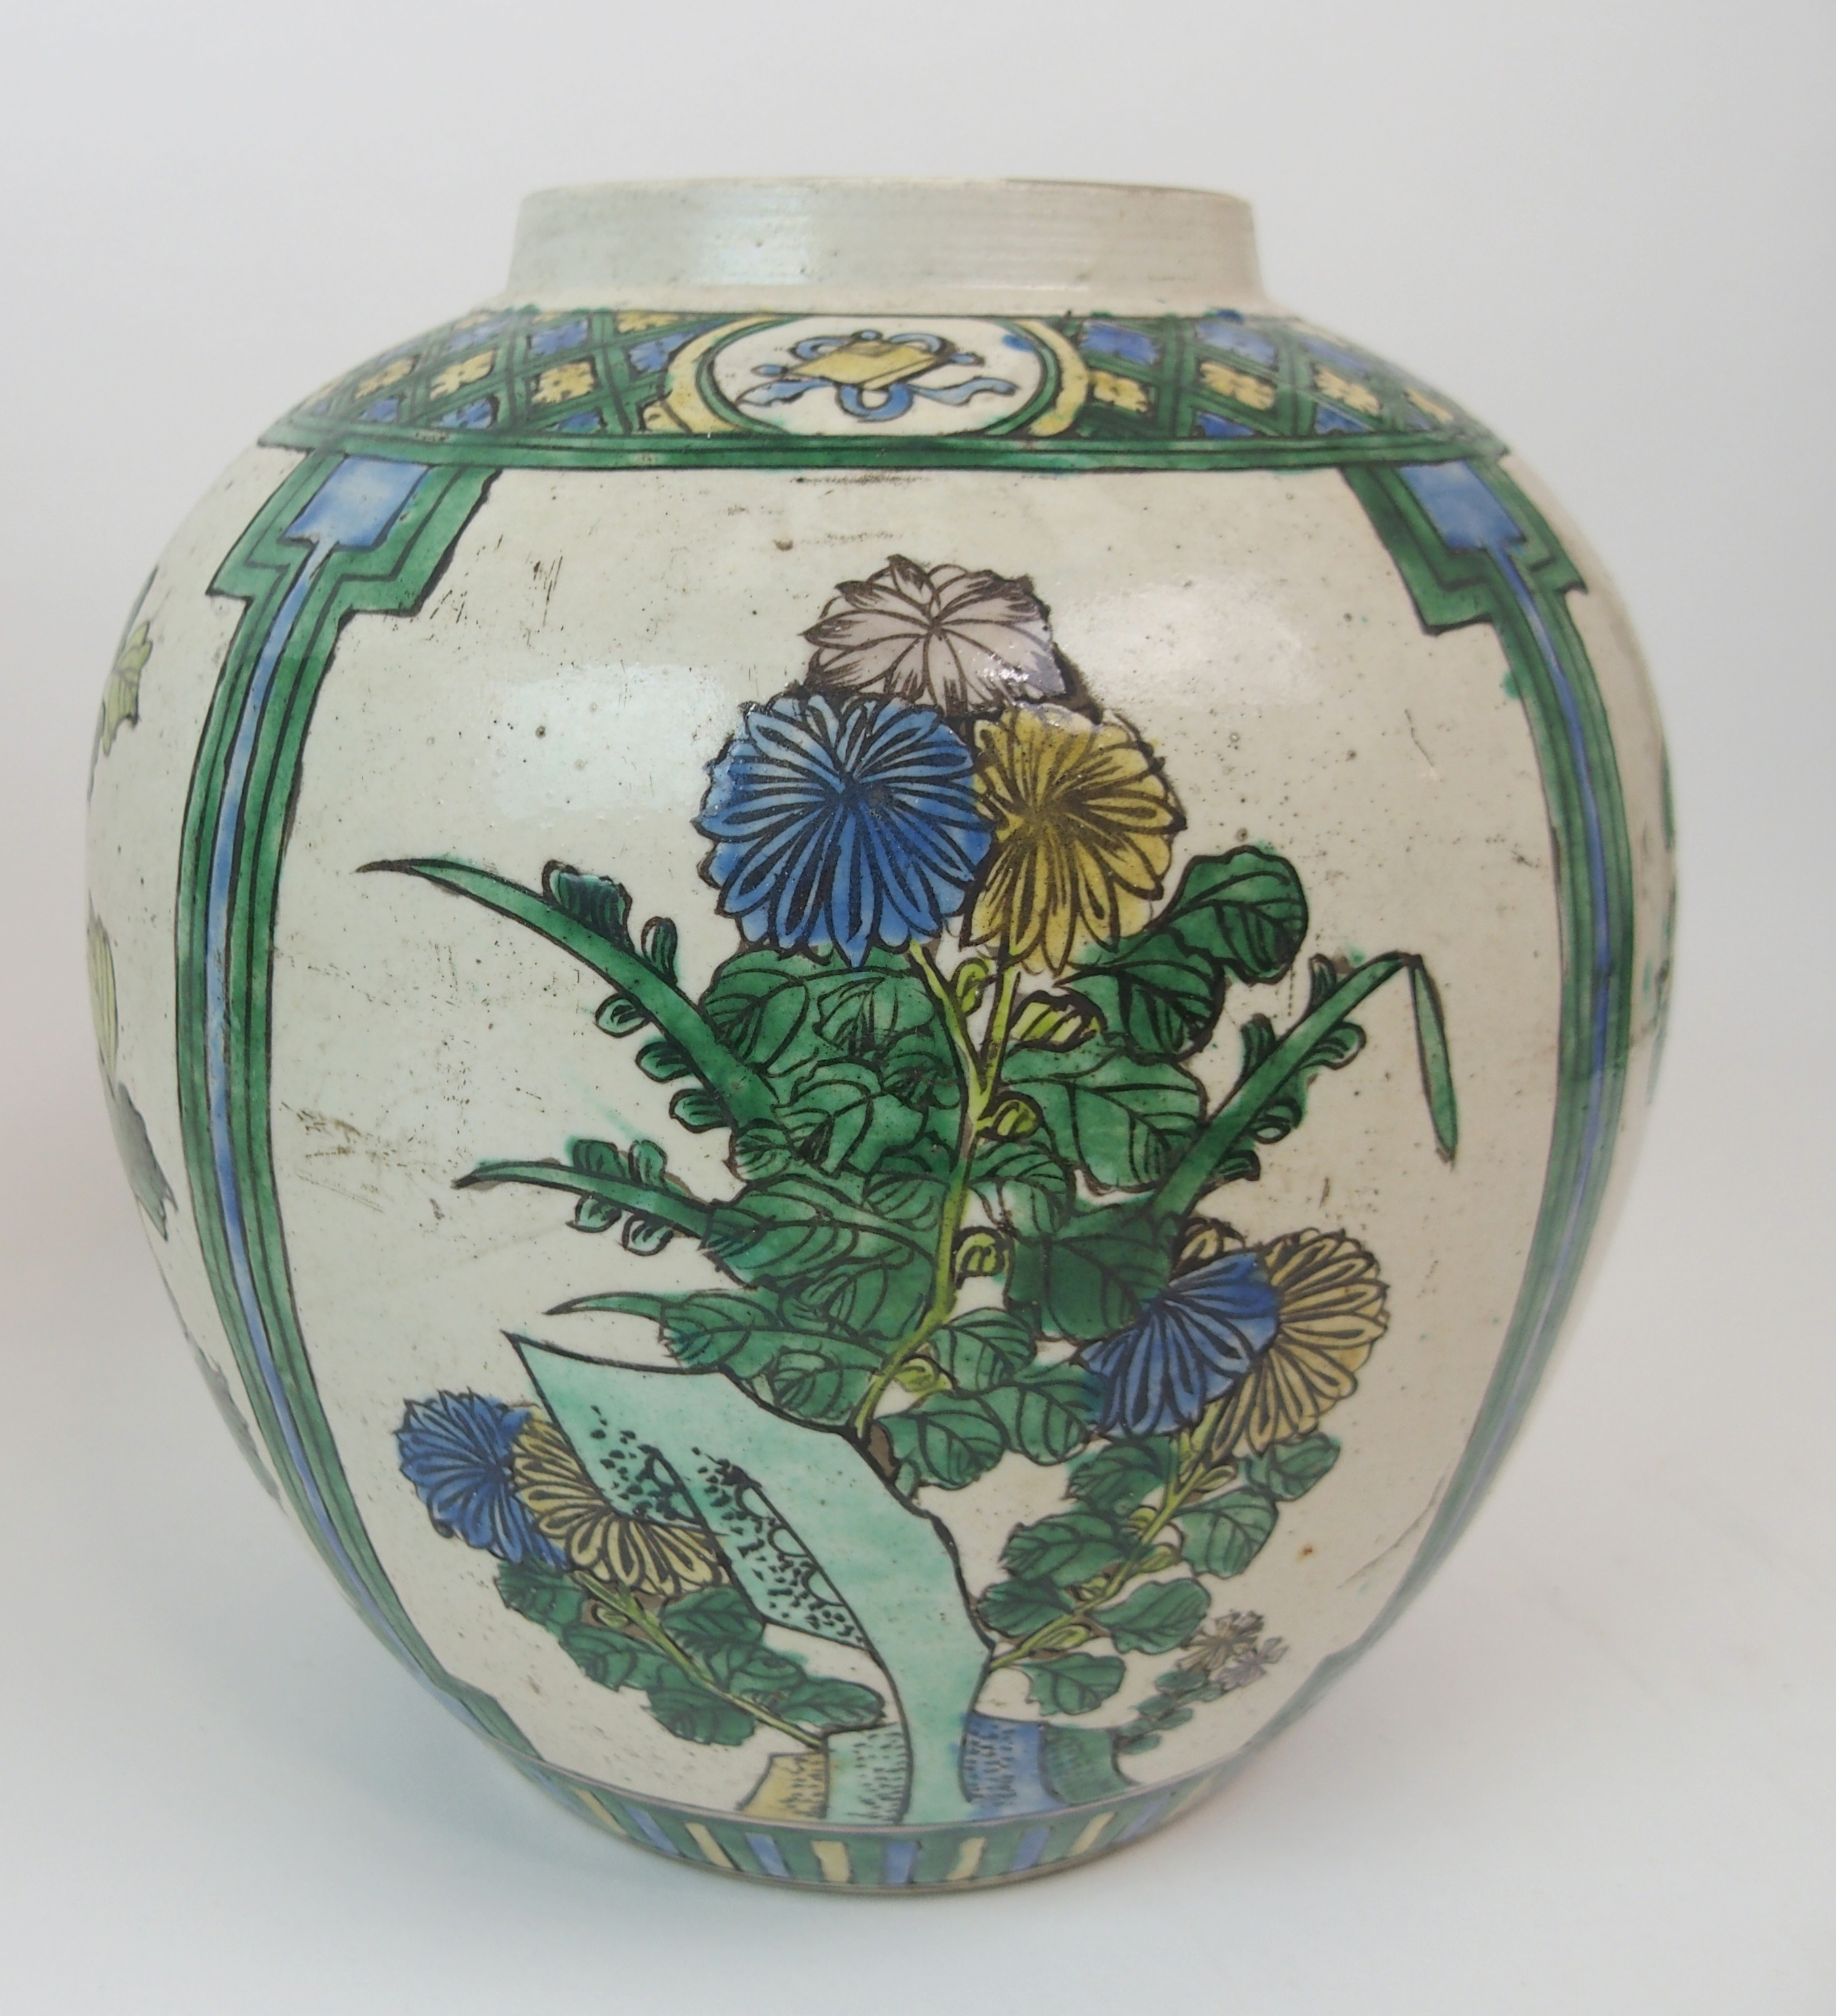 Lot 15 - A SUMIDA WARE BALUSTER VASE AND DOMED COVER applied in high relief with Kannon, devotee and precious